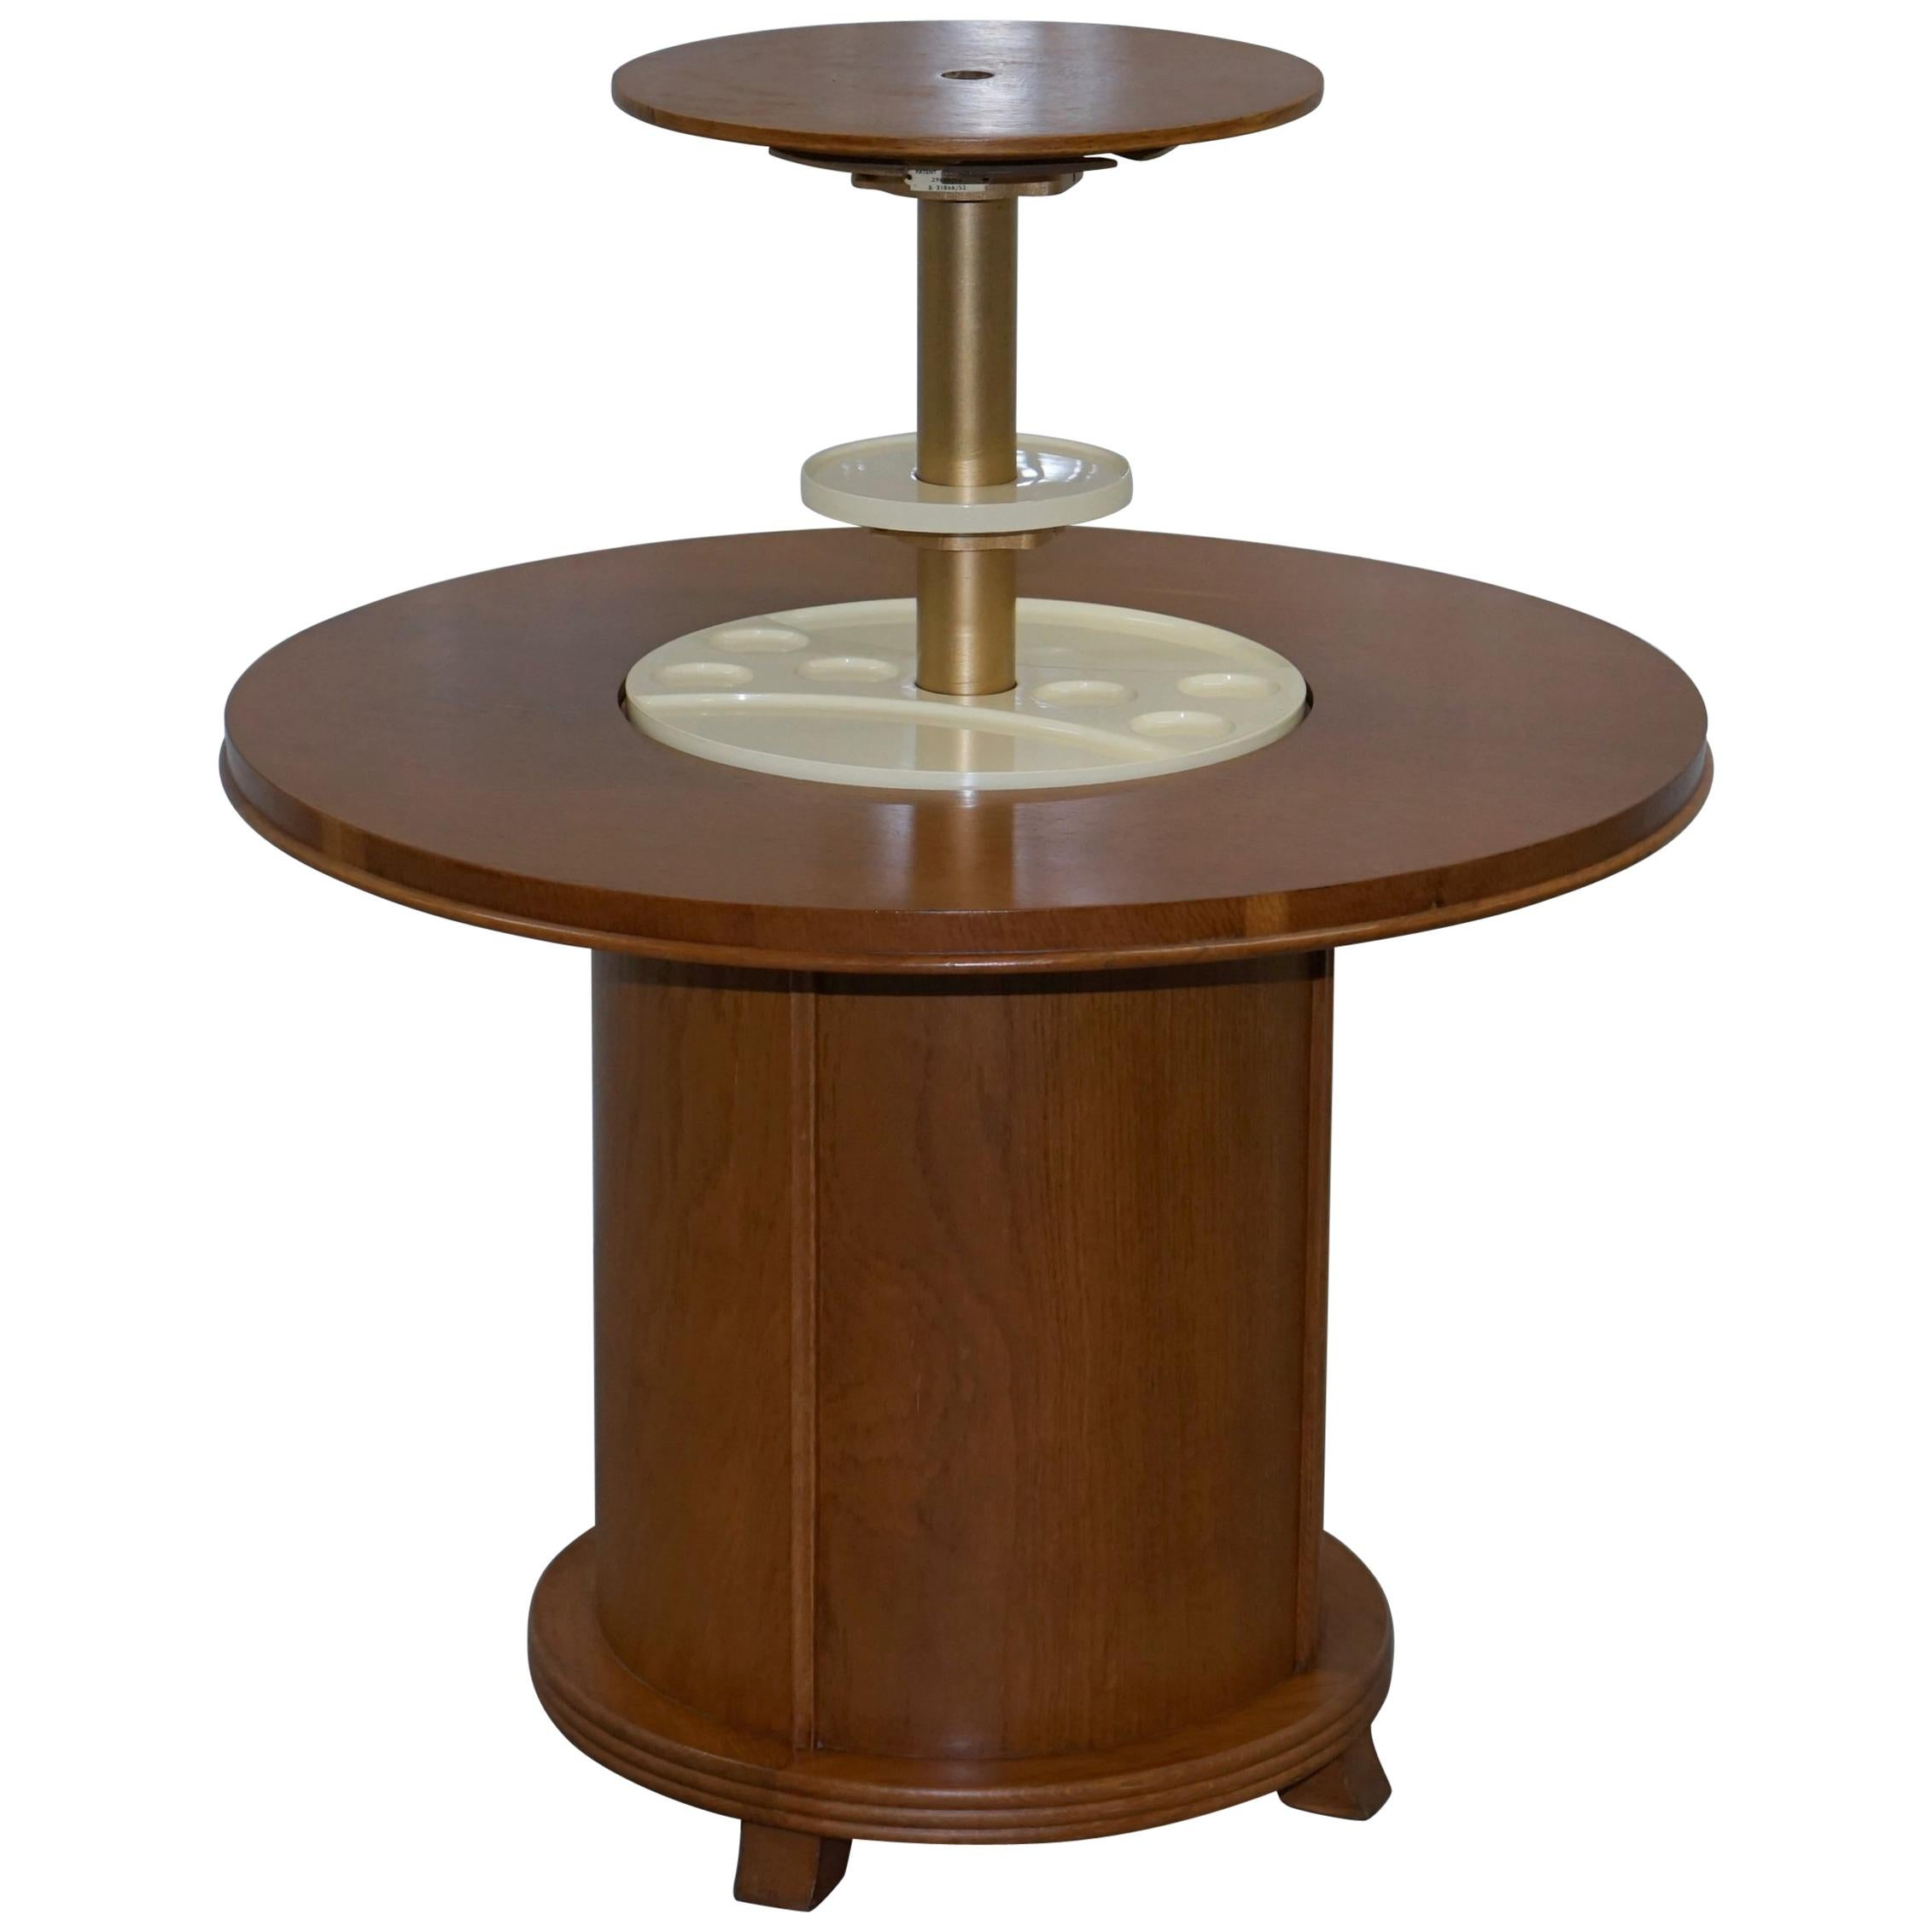 Rare 1930s Walnut Cocktail Table Cabinet With Rising Drinks Decanter Holder